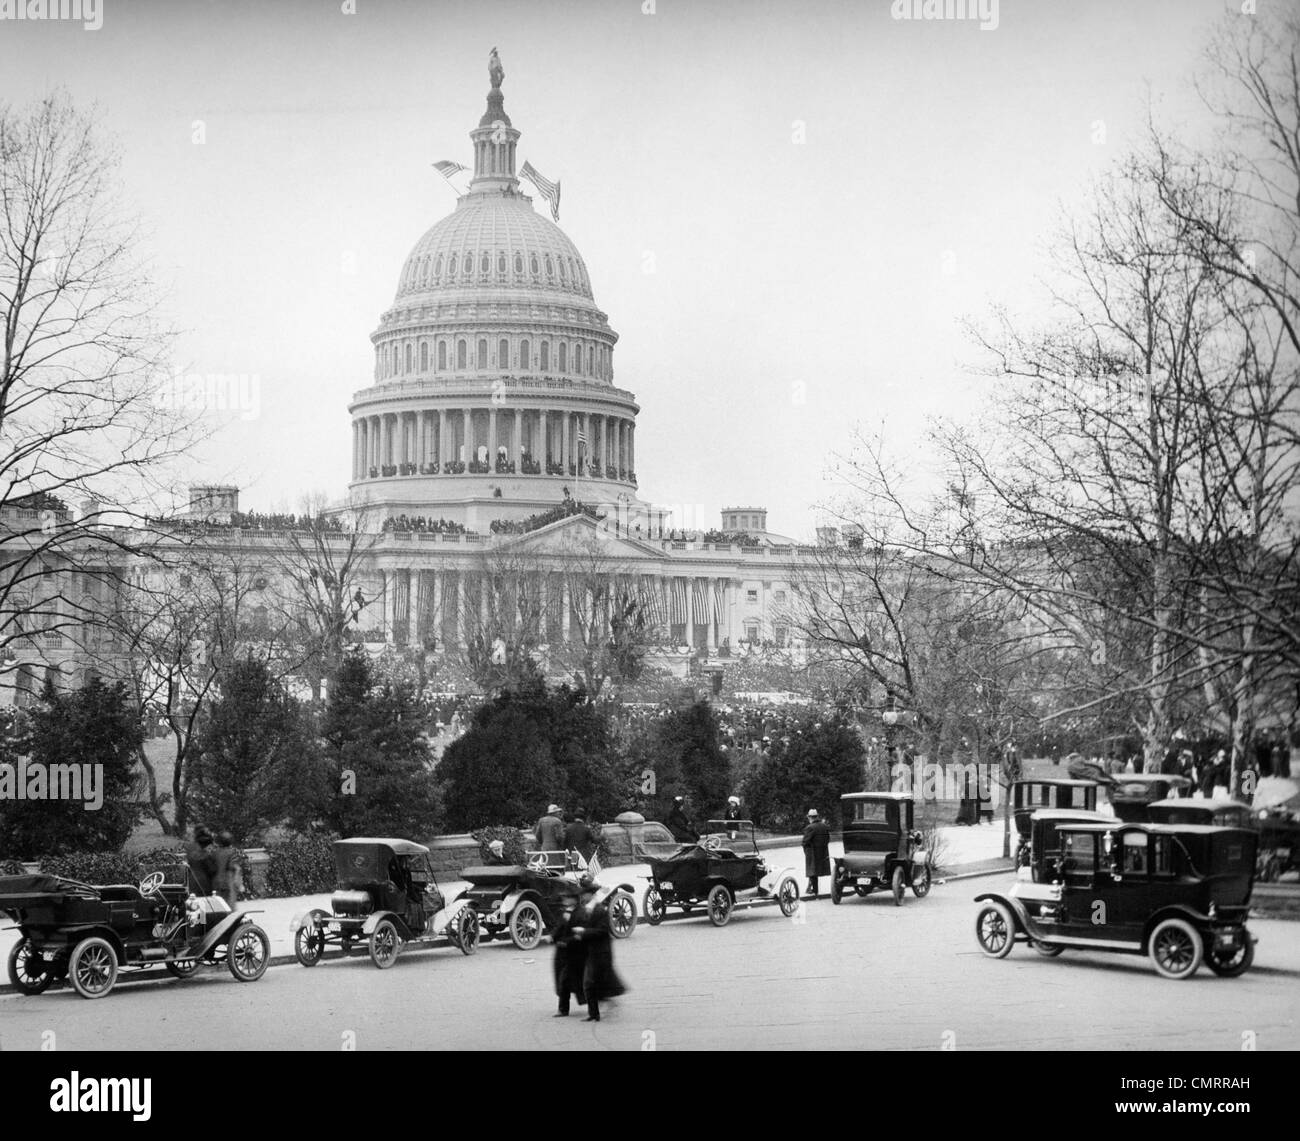 1910s 1920s CAPITOL BUILDING WASHINGTON DC LINE OF CARS PARKED ON STREET IN FOREGROUND - Stock Image